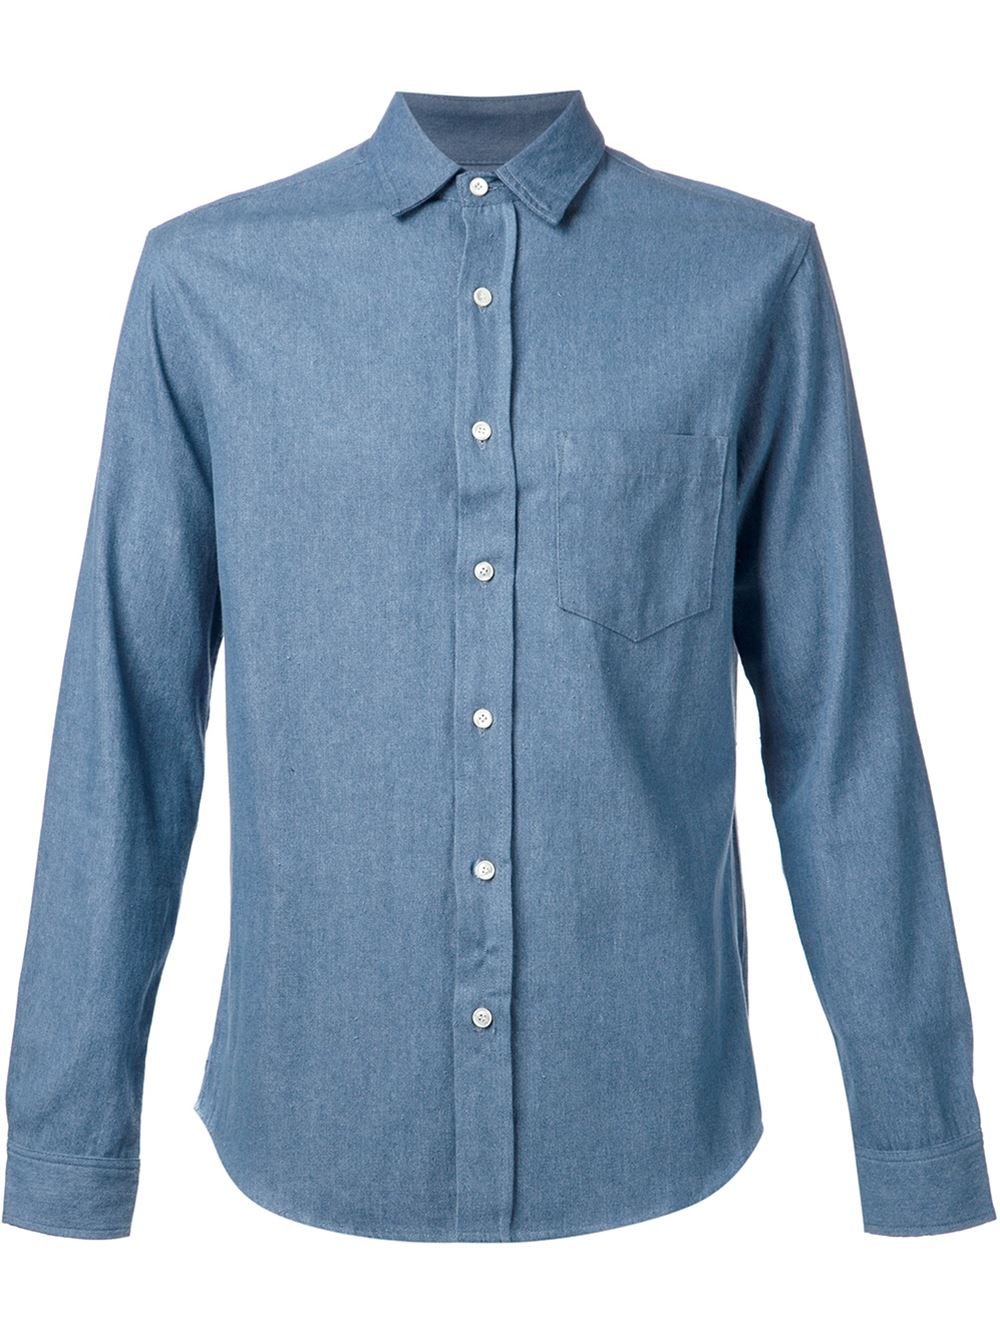 fadeless classic chambray shirt in blue for men lyst